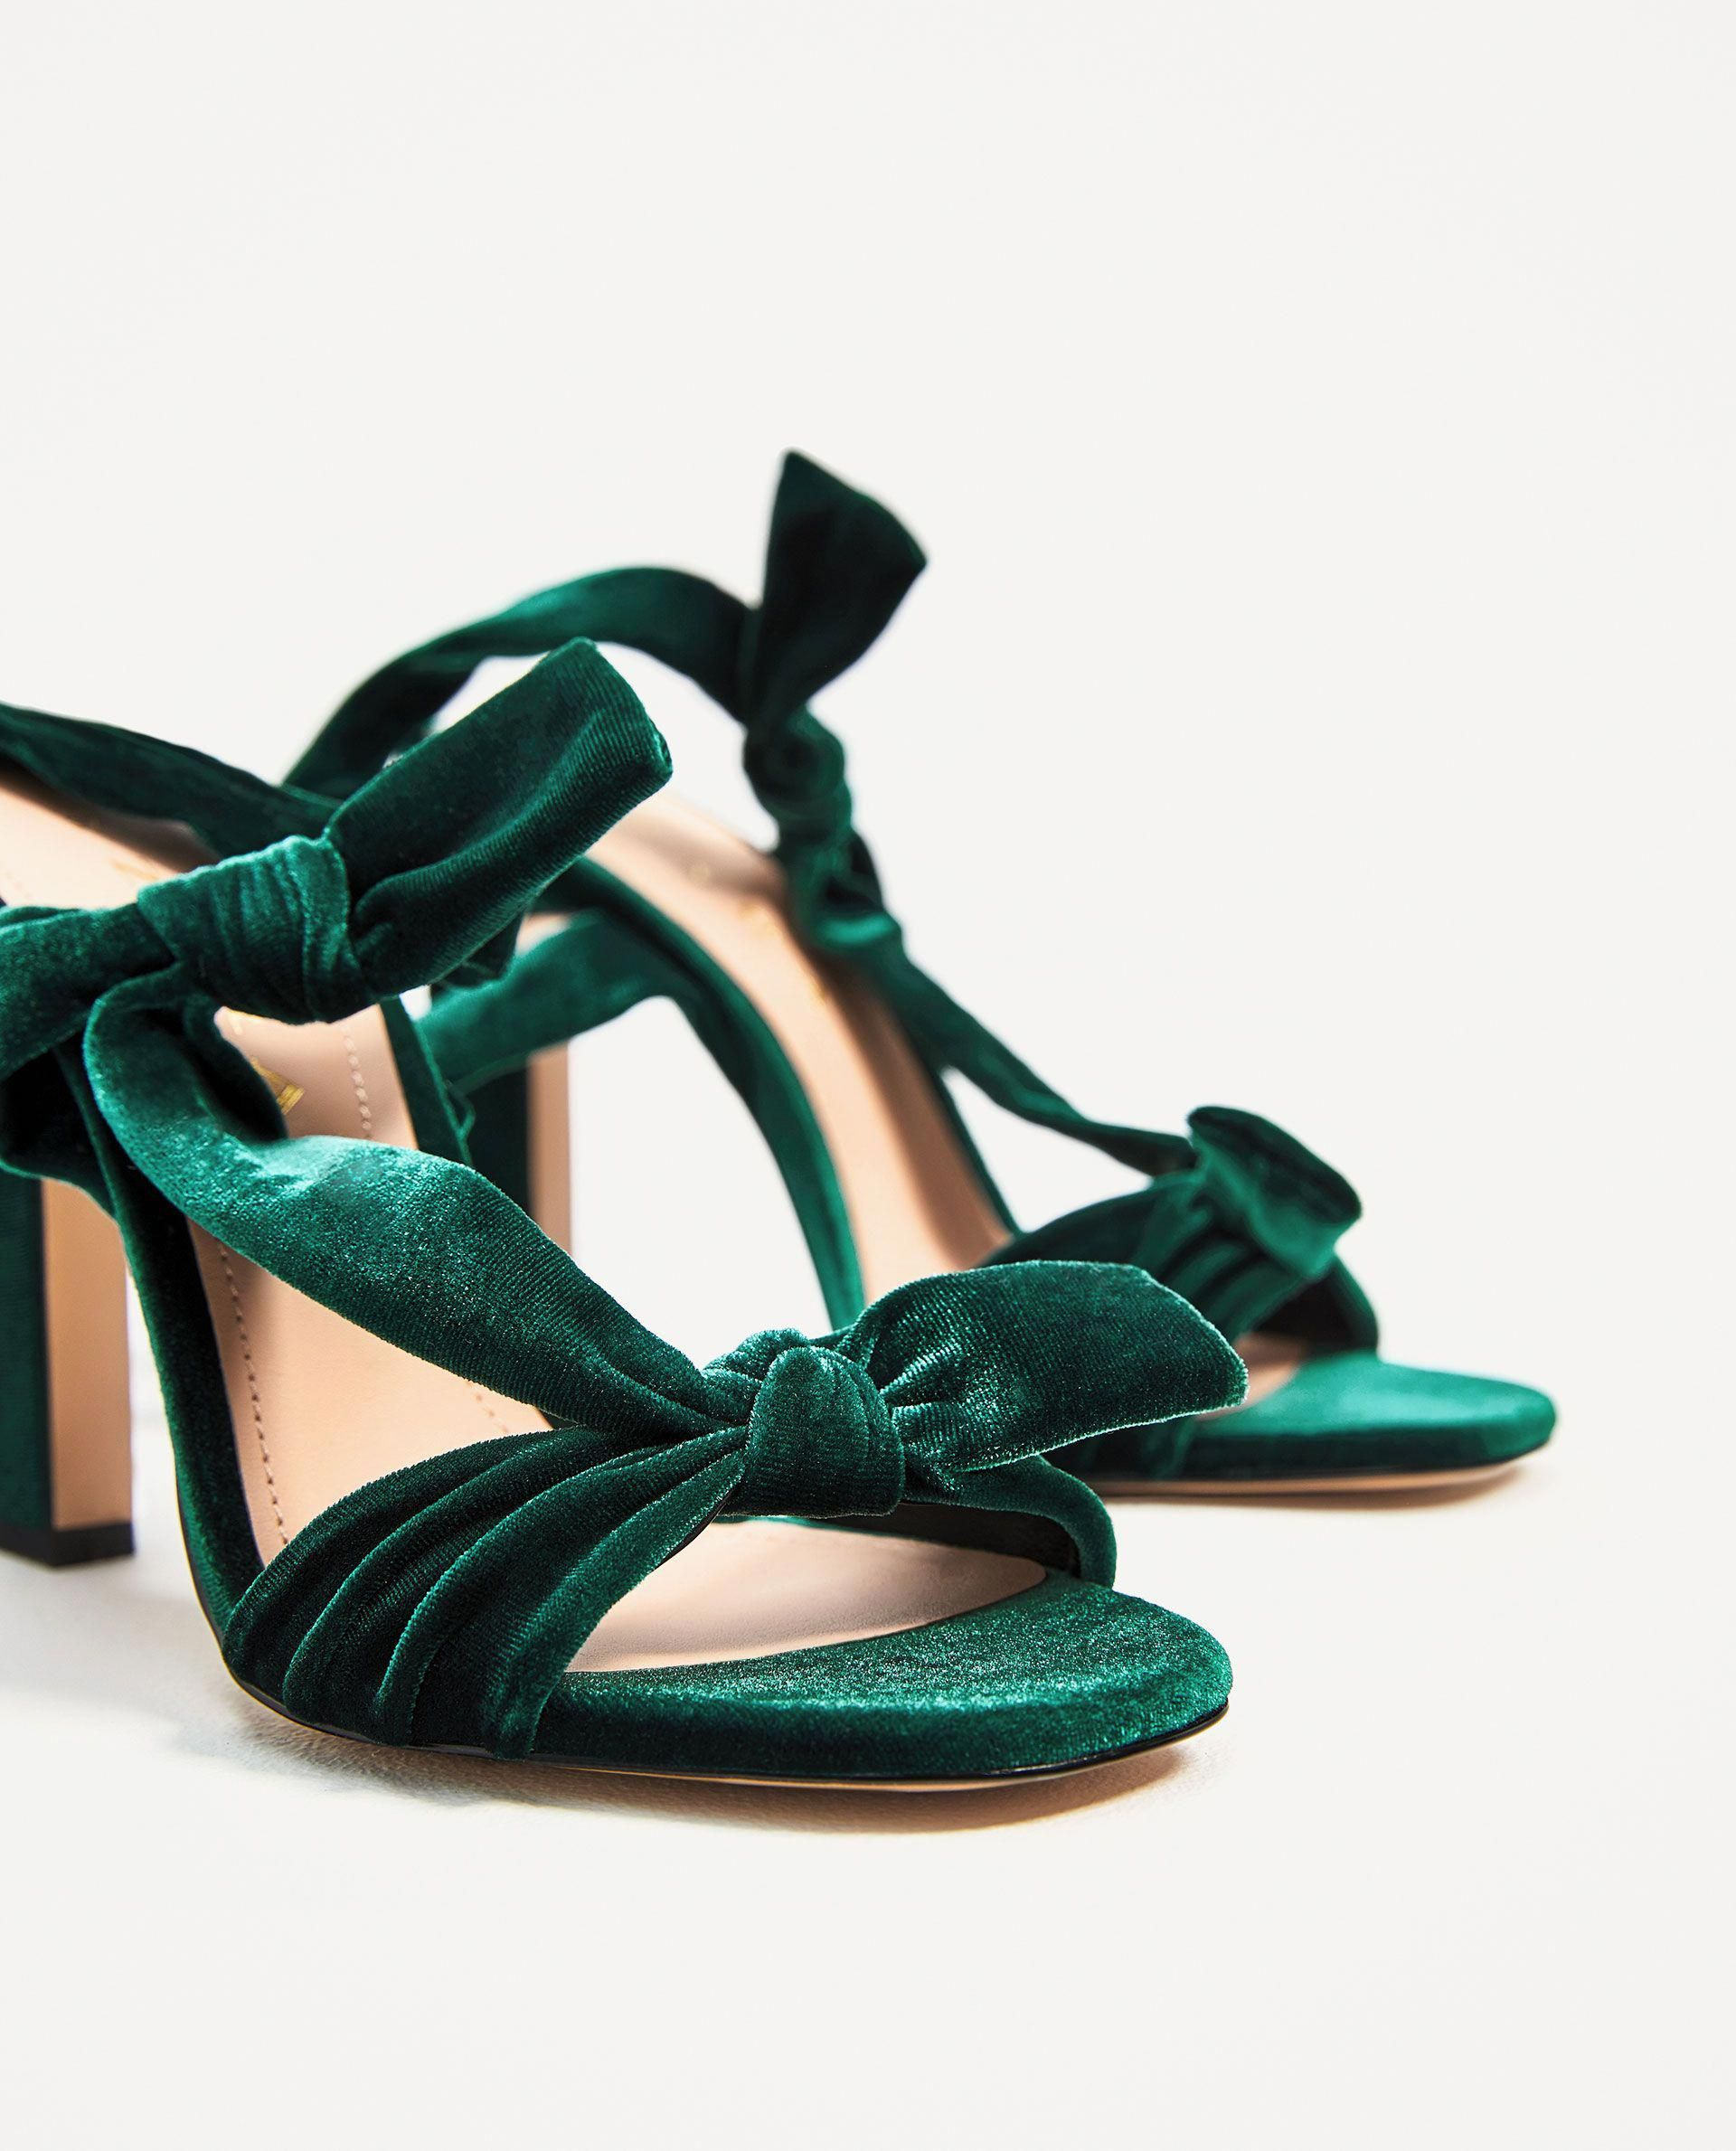 b2d430695d4 ZARA - WOMAN - VELVET LACE-UP HIGH HEEL SANDALS  YourPinterestLikes Green  Sandals